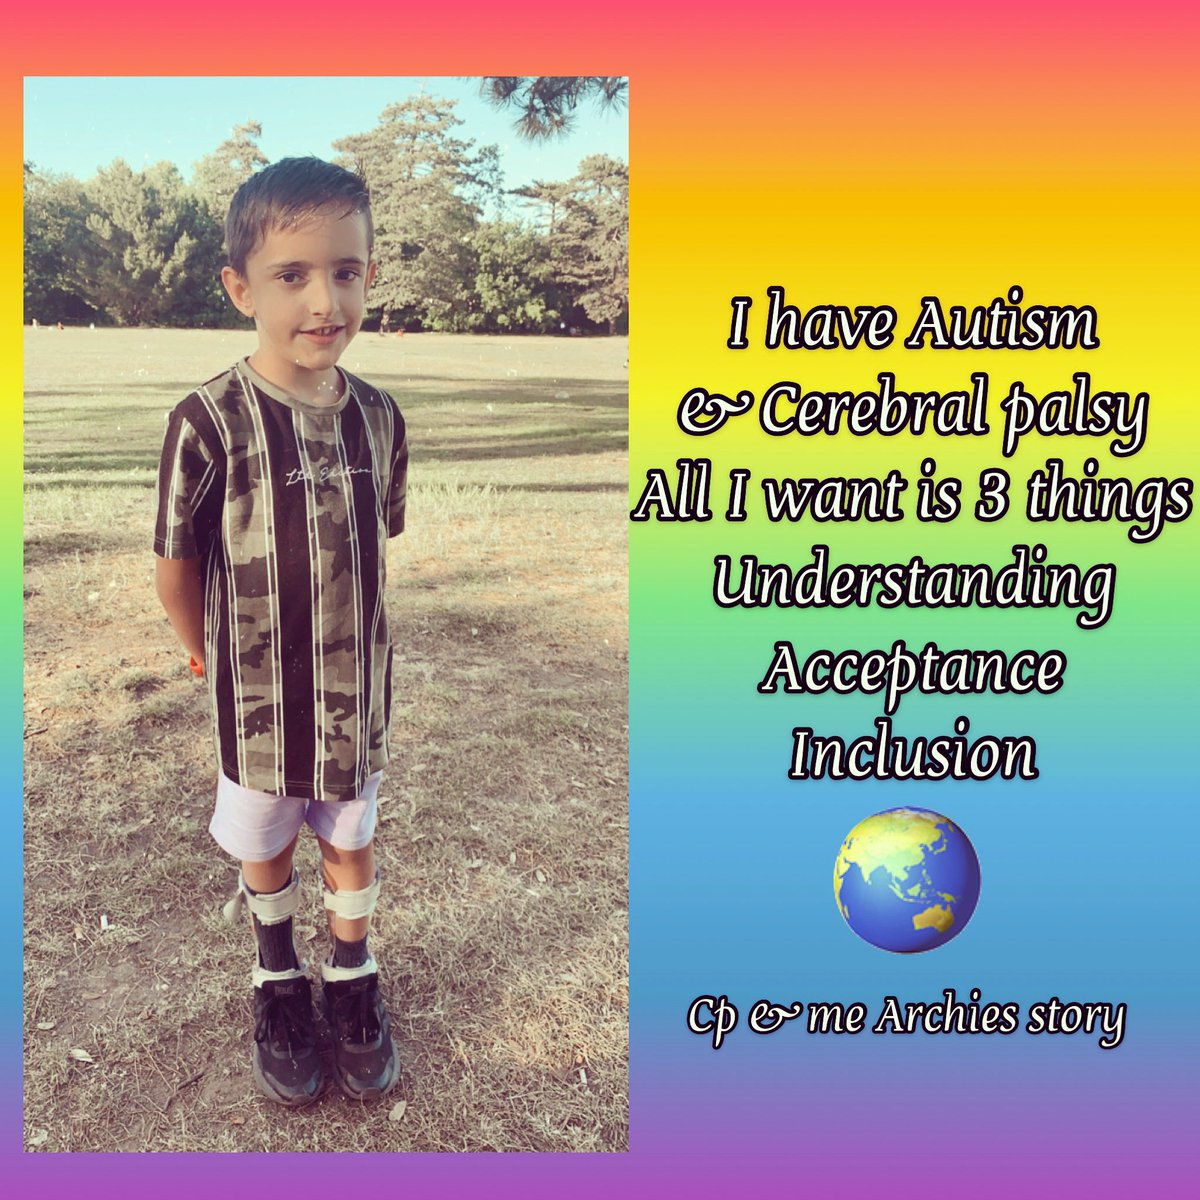 #understanding #acceptance #inclusion #autism #cerebralpalsy #disabilityawareness #archiesstory https://t.co/iL0natLy9D